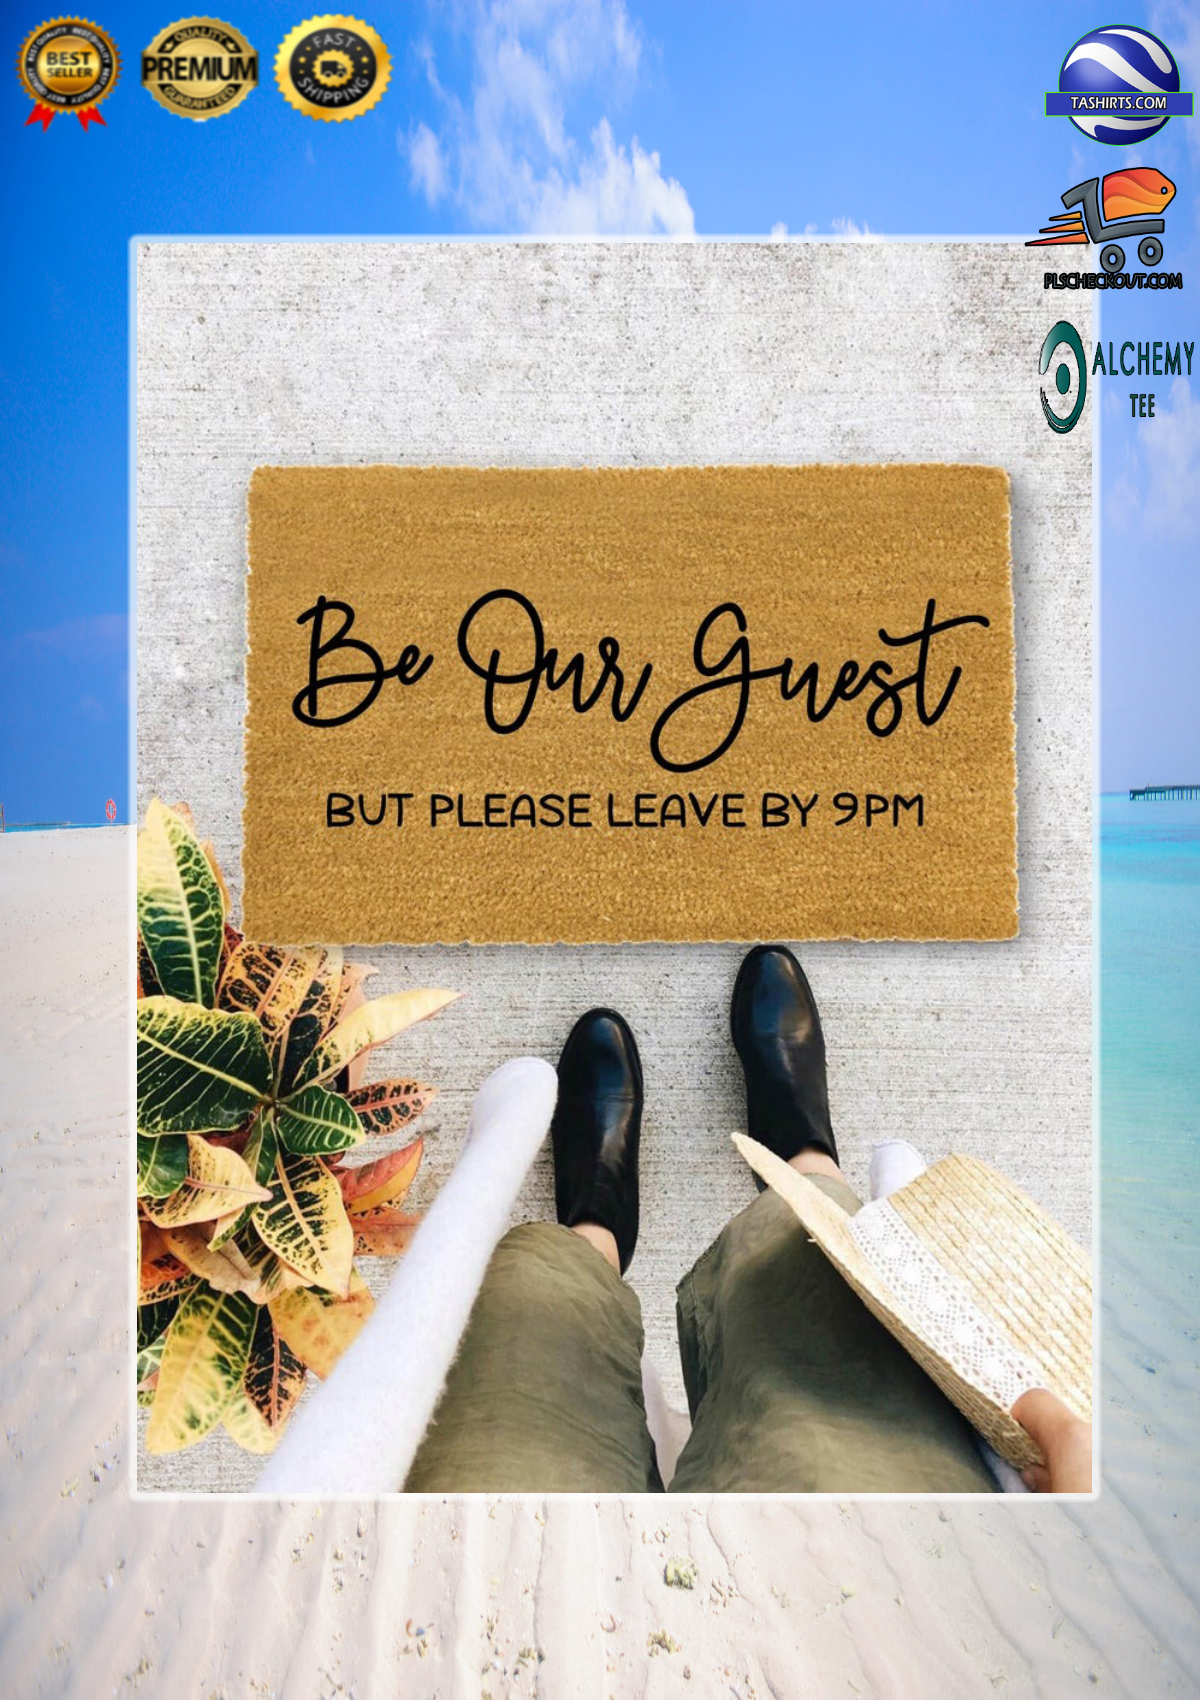 Be our guest but please leave by 9pm doormat 3